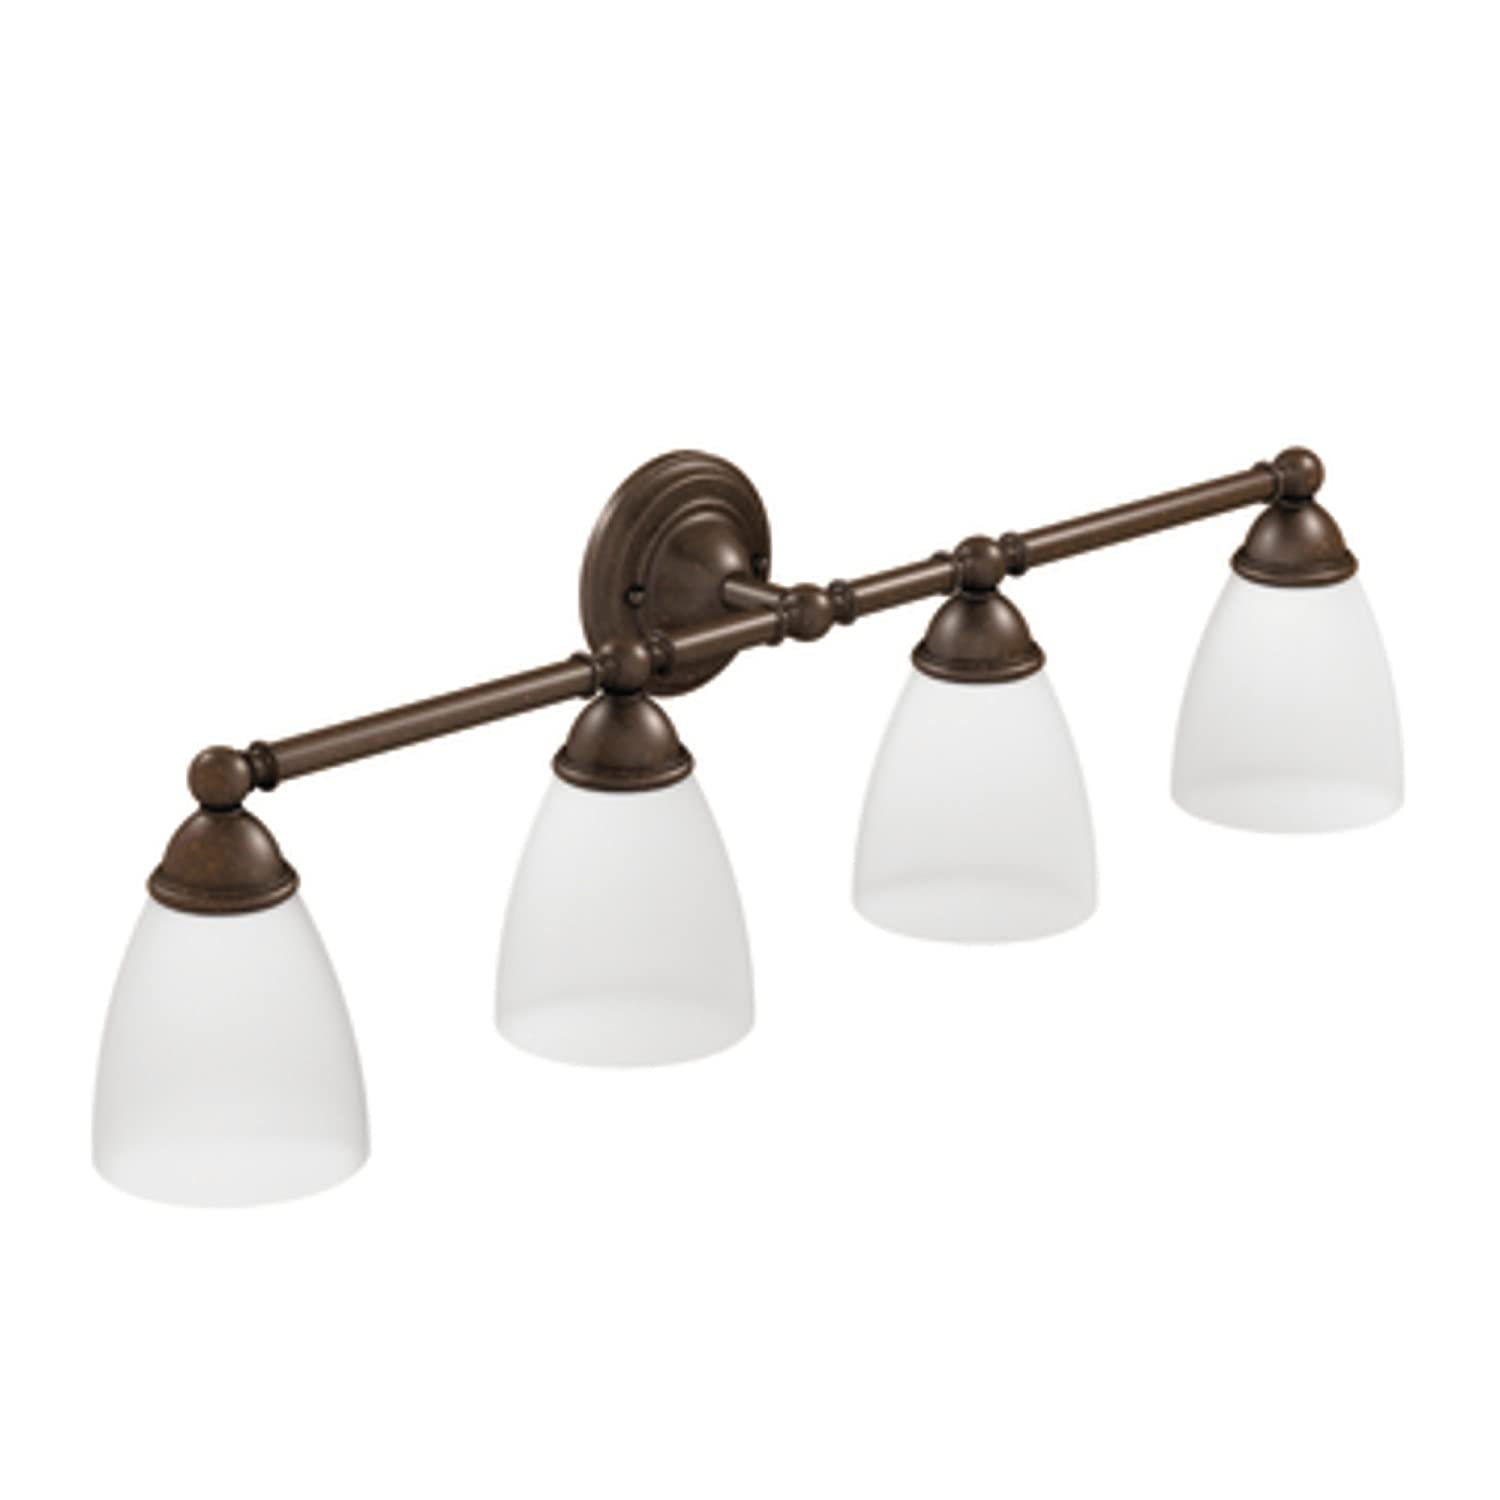 Moen YB2264ORB Brantford Bath Lighting Oil Rubbed Bronze